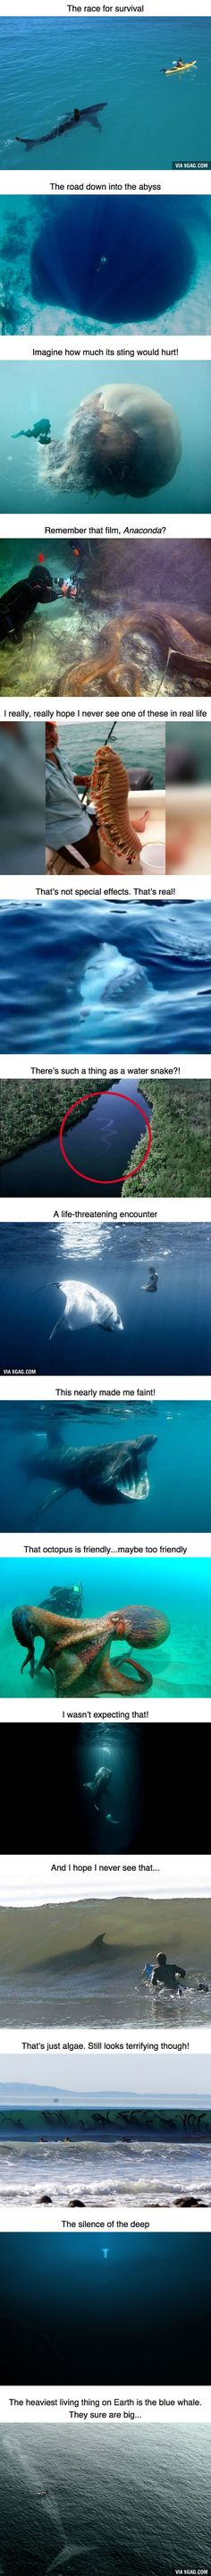 8a6cb77d8 15 Photos That Will Make You Think Twice About Going Swimming Funny Animals,  Wild Animals